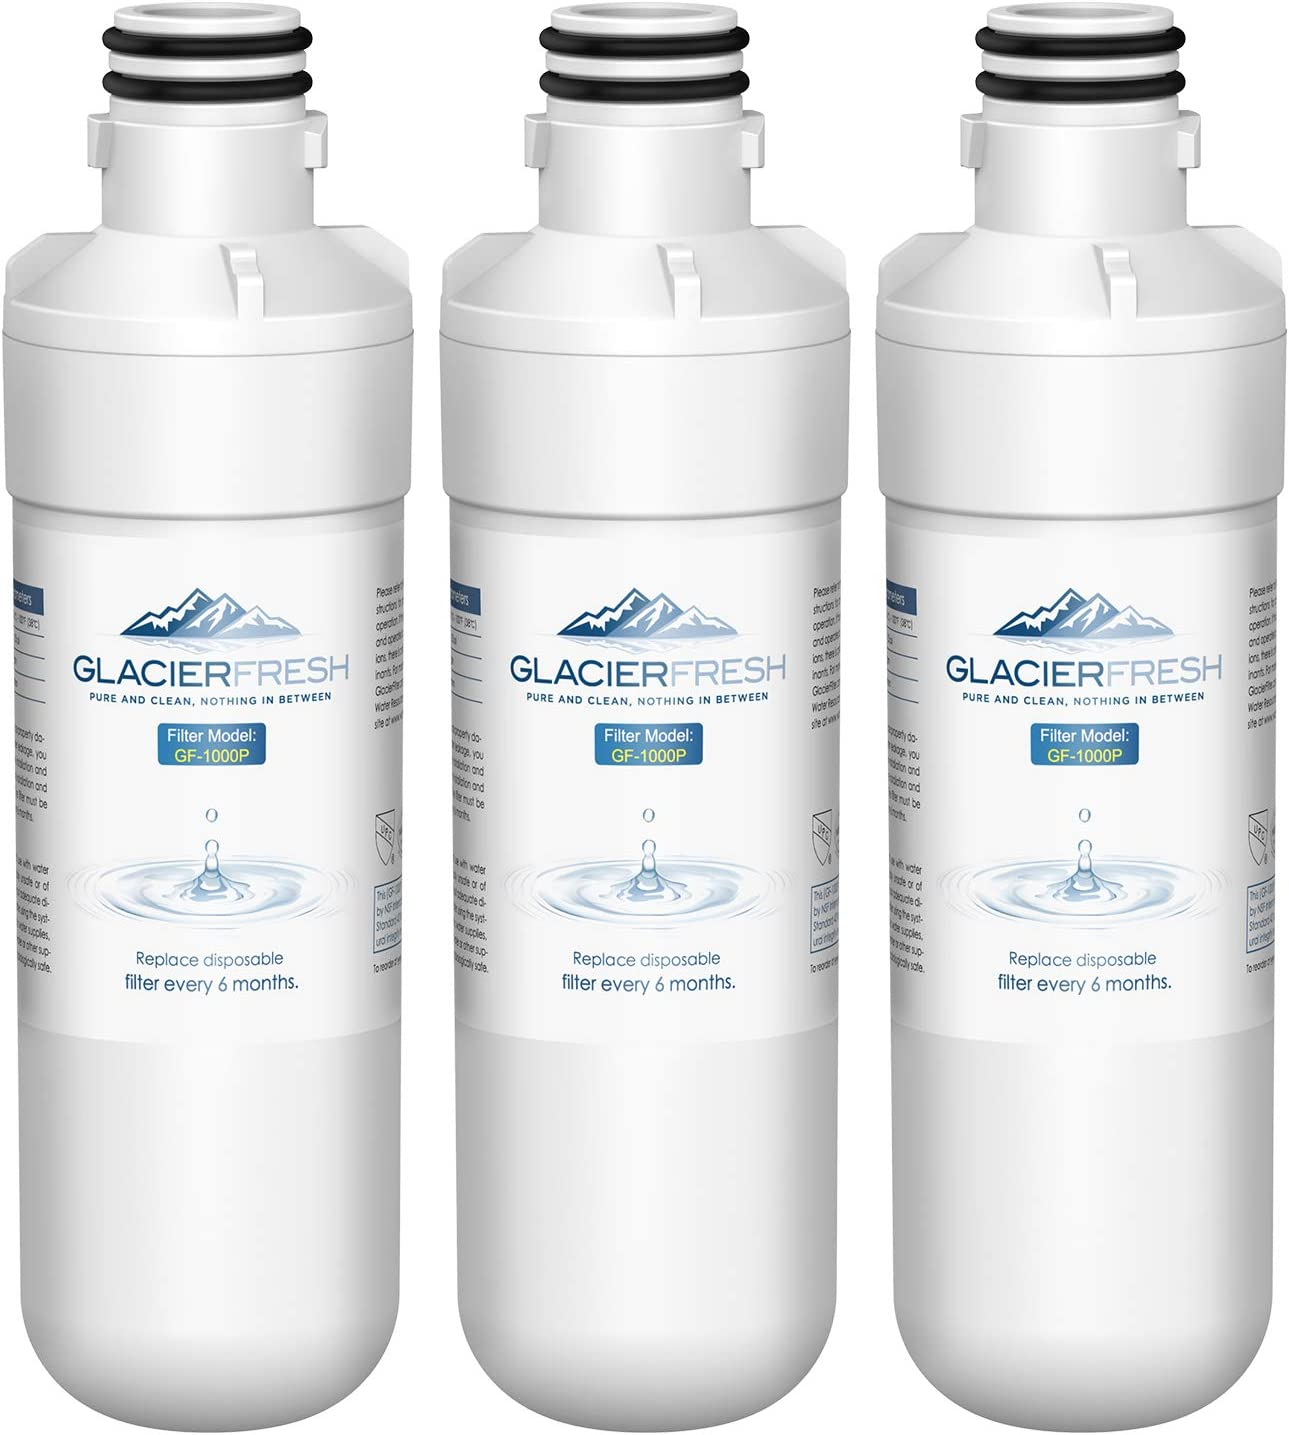 GLACIER FRESH LT1000P Refrigerator Water Filter, Compatible with LG LT1000P, LT1000PC, LT1000PCS, MDJ64844601, ADQ747935, Kenmore 9980 Water Filter, 3 Pack